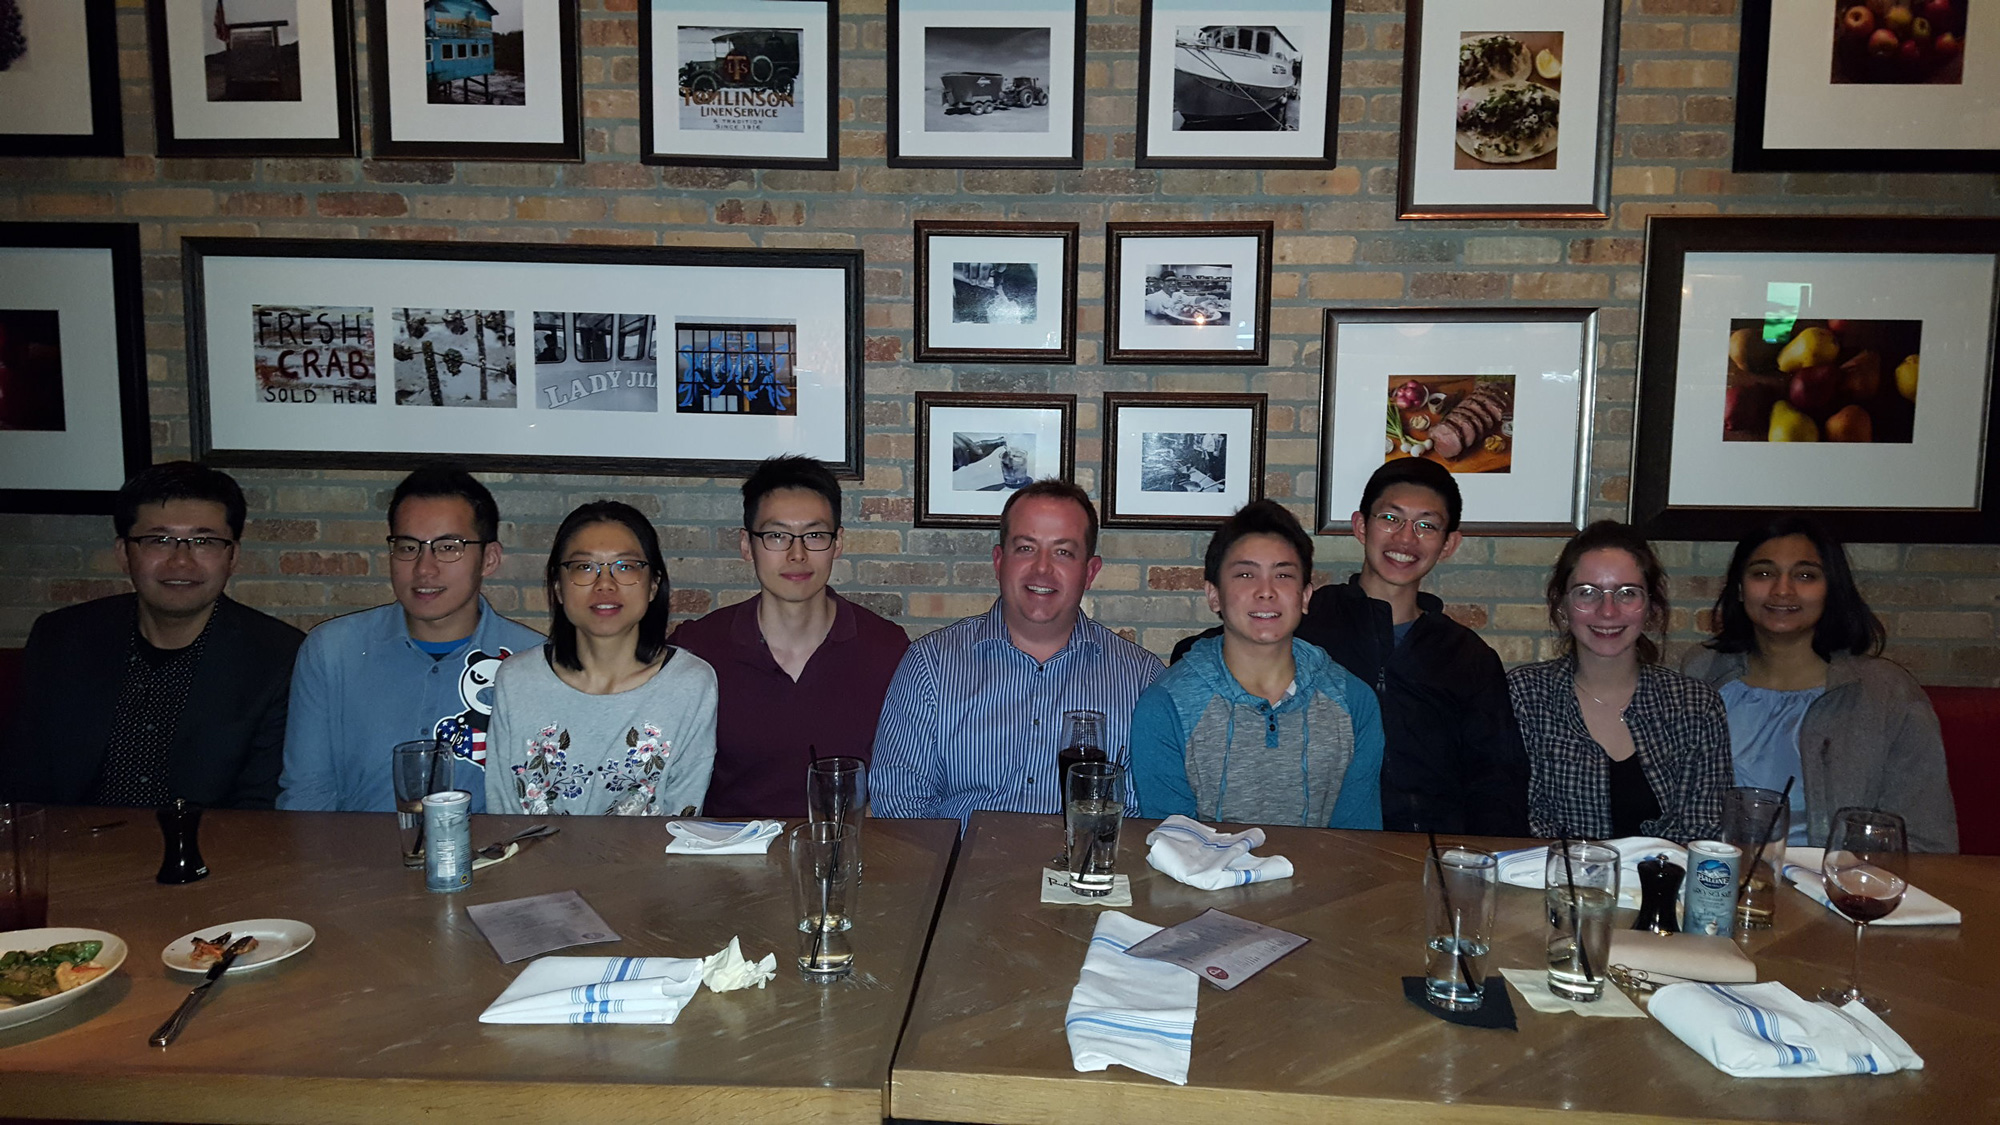 Jay Turner (BS '01, EAS) and Satoshi Ohtake (BS '00, Chemical Engineering) took 8 students out to dinner at Paul Martin's on Lake. Fun fact: Jay and Satoshi were roommates back at Caltech (friends for over 20 years!) and Satoshi serves as a member of the CAA board.